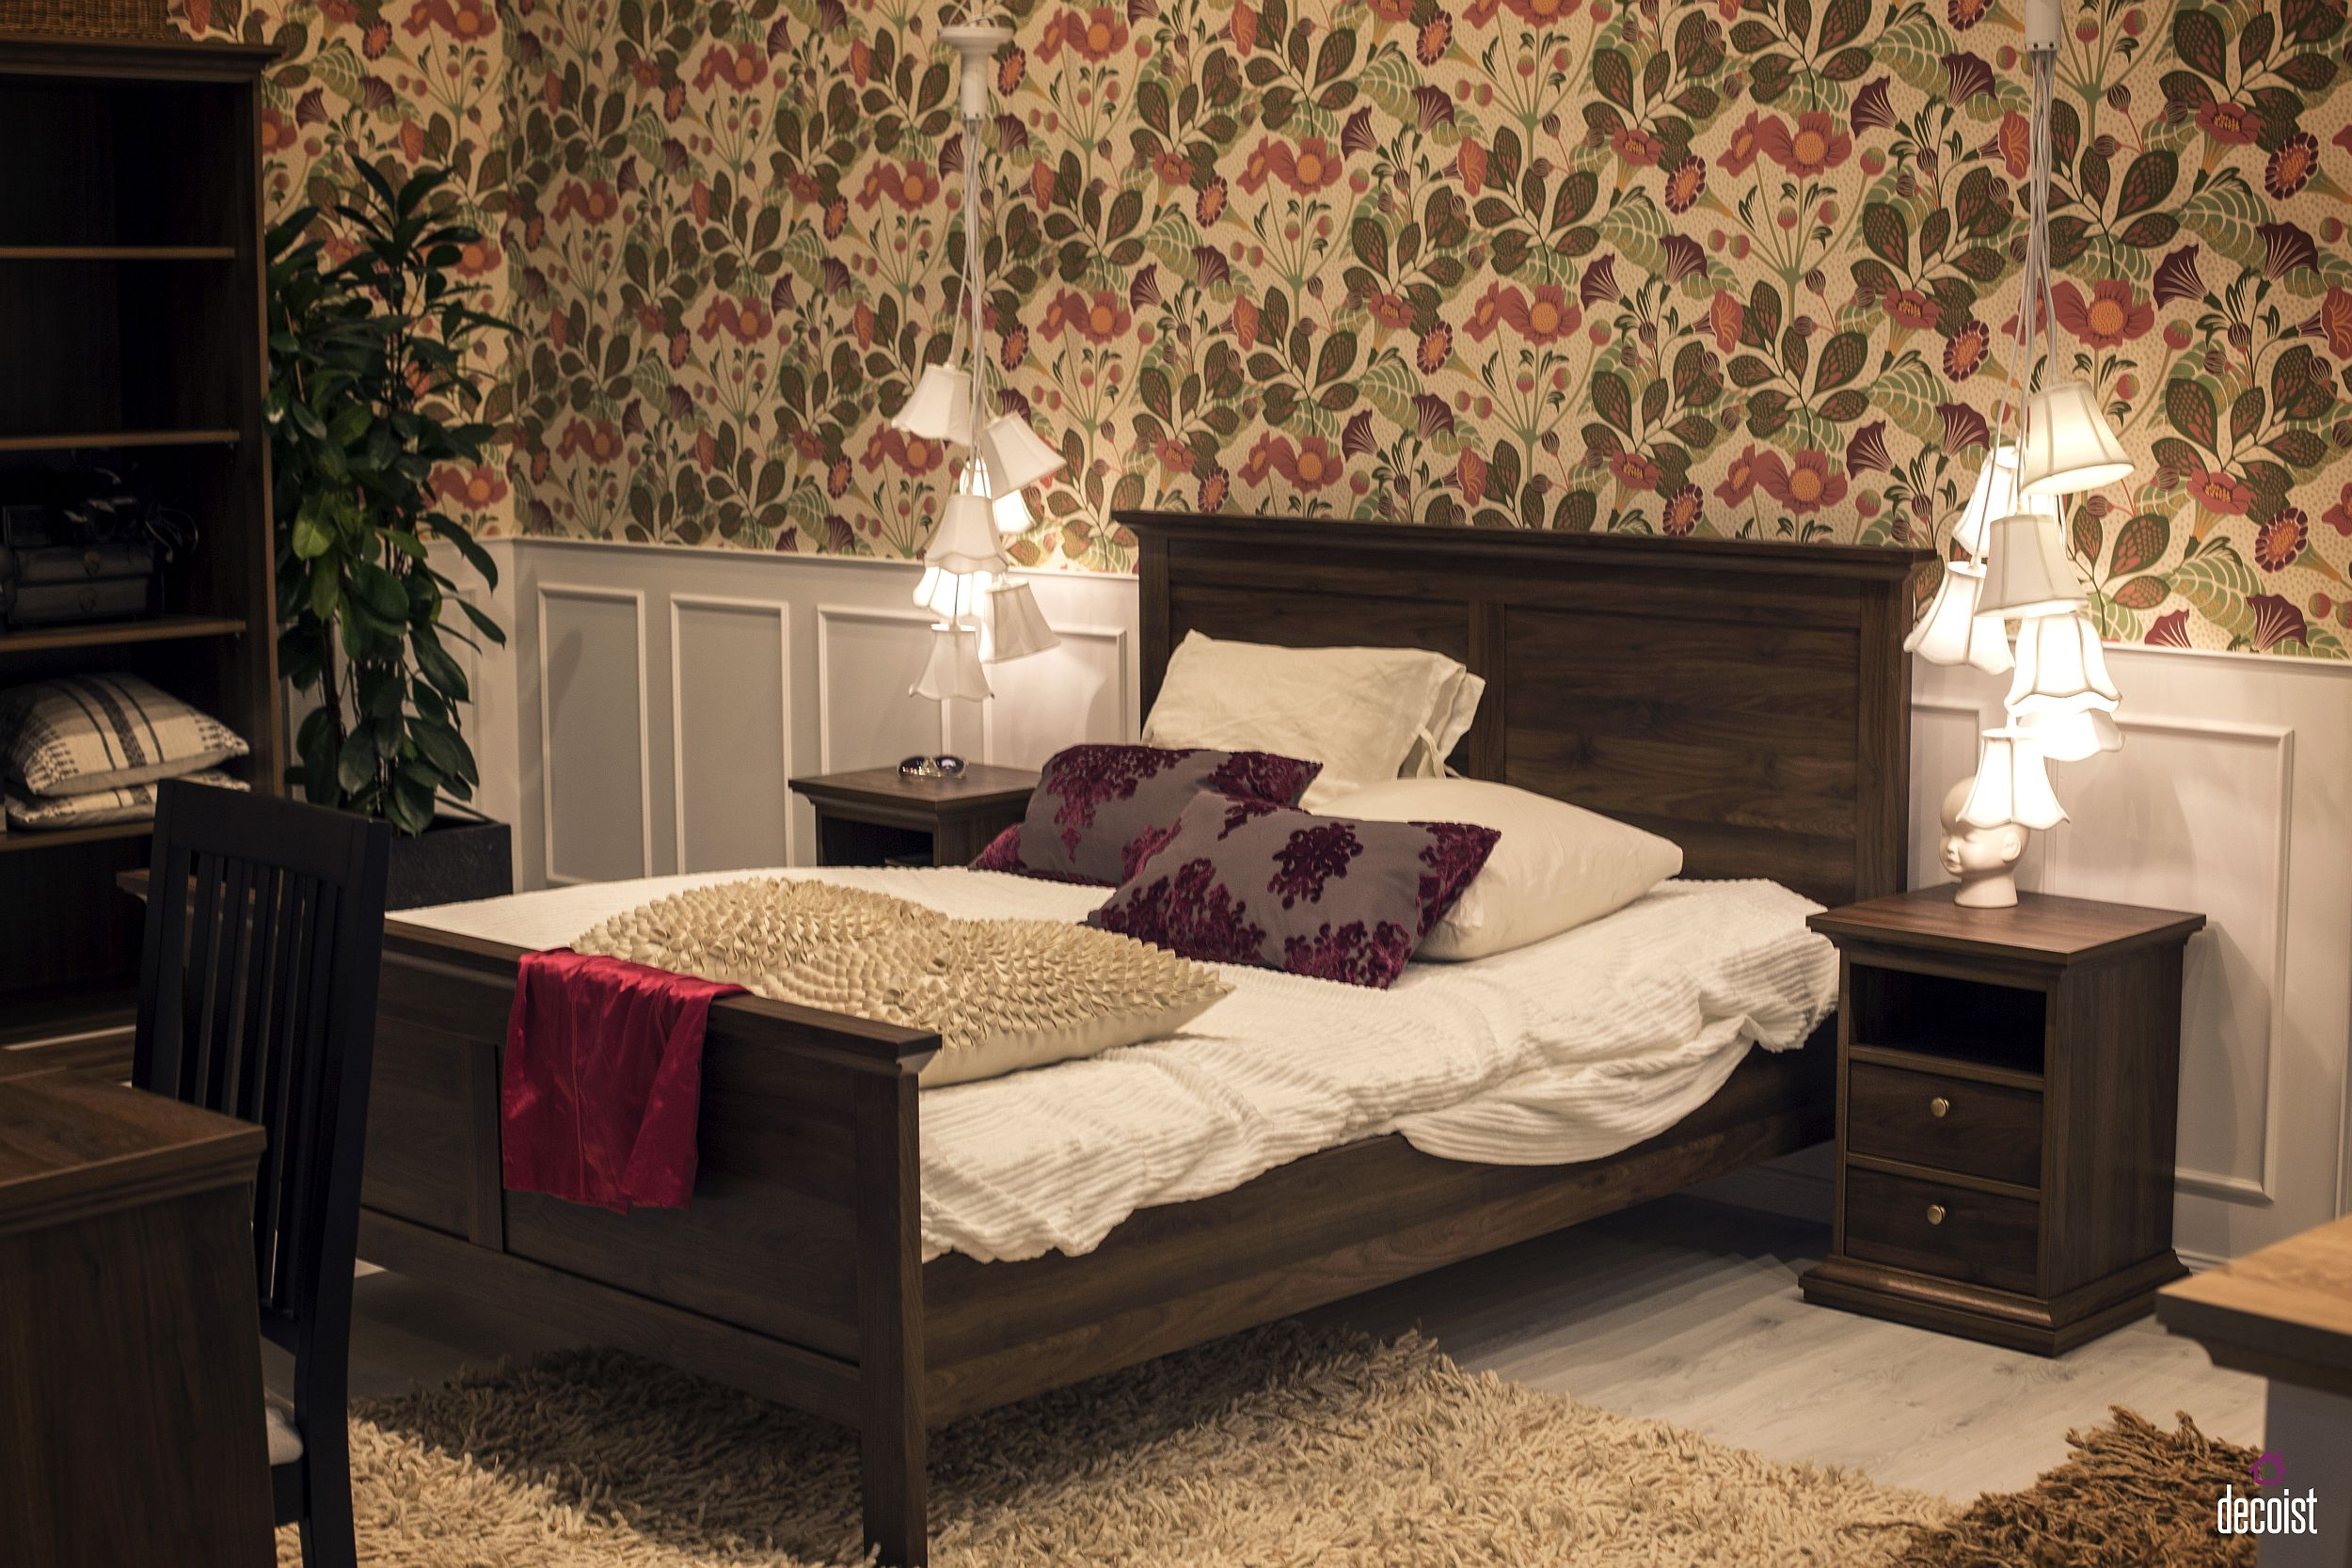 Delightful and flowery bedside lighting fixtures are perfect for the teen girl bedroom